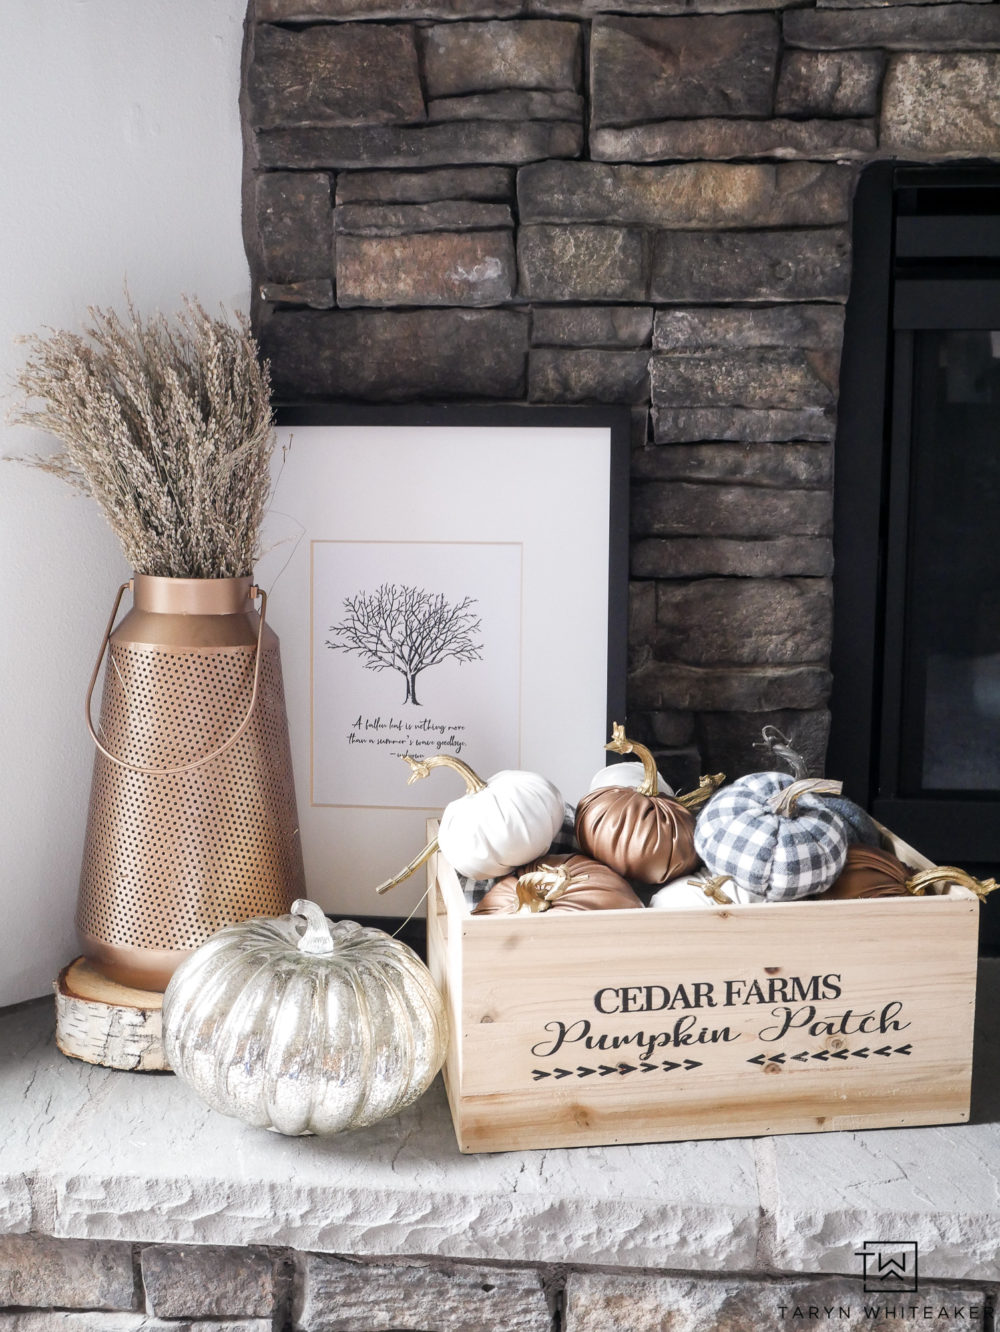 Download your own FREE Fall Printable to decorate your mantel or anywhere in your house!